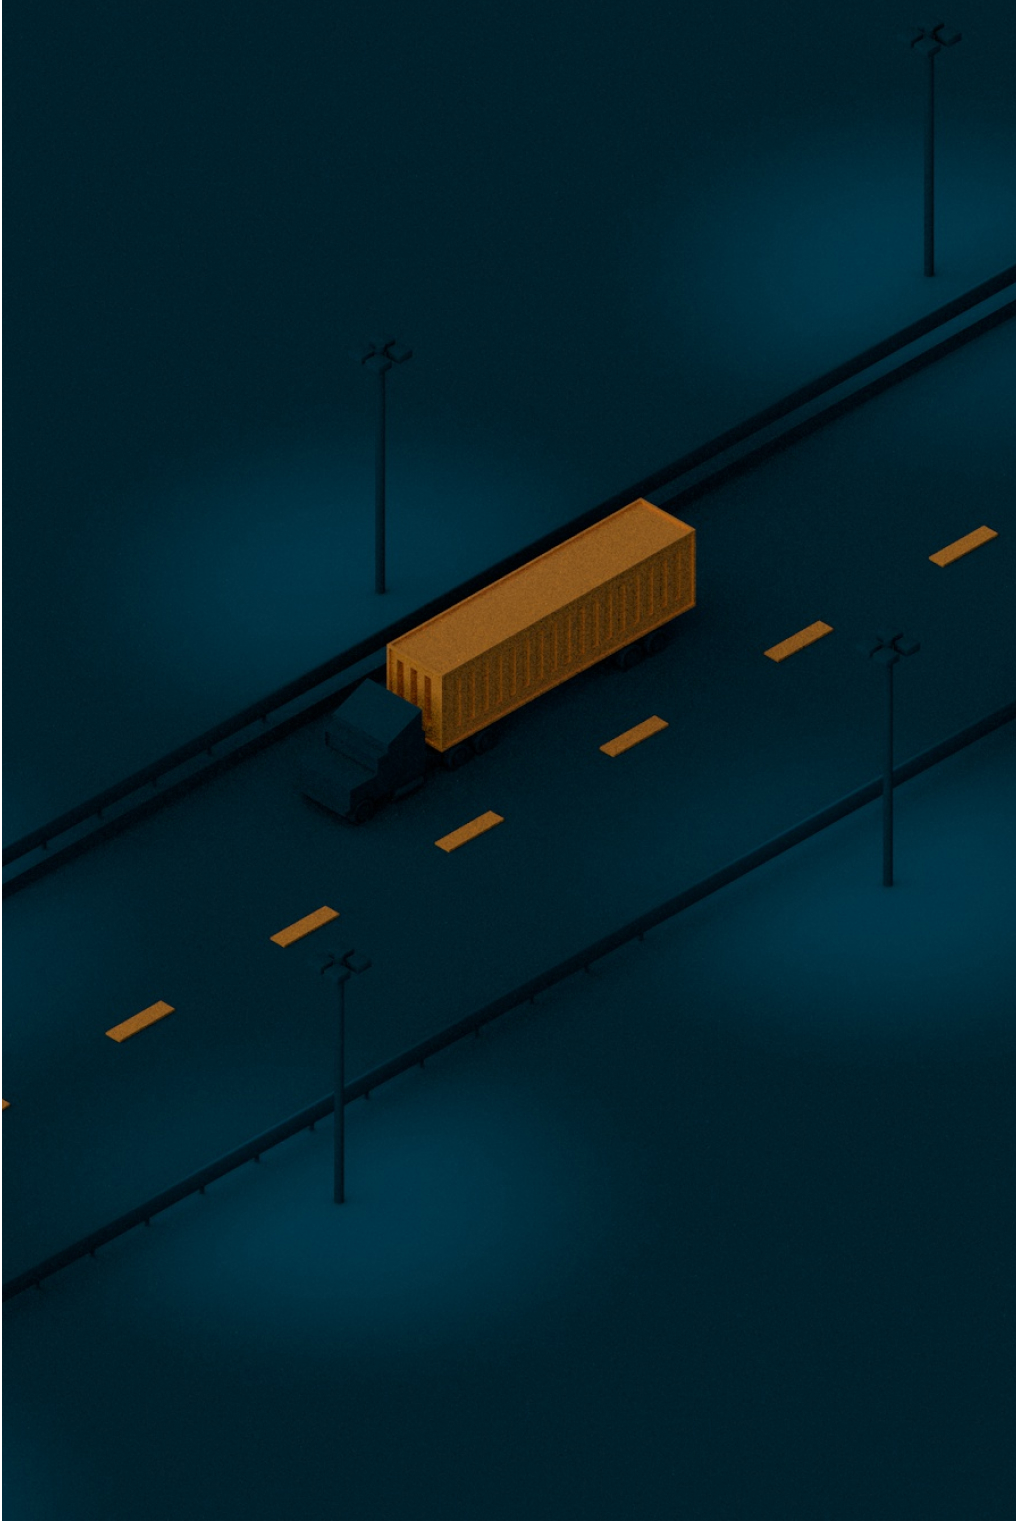 This is a background Image | Illustration of a truck